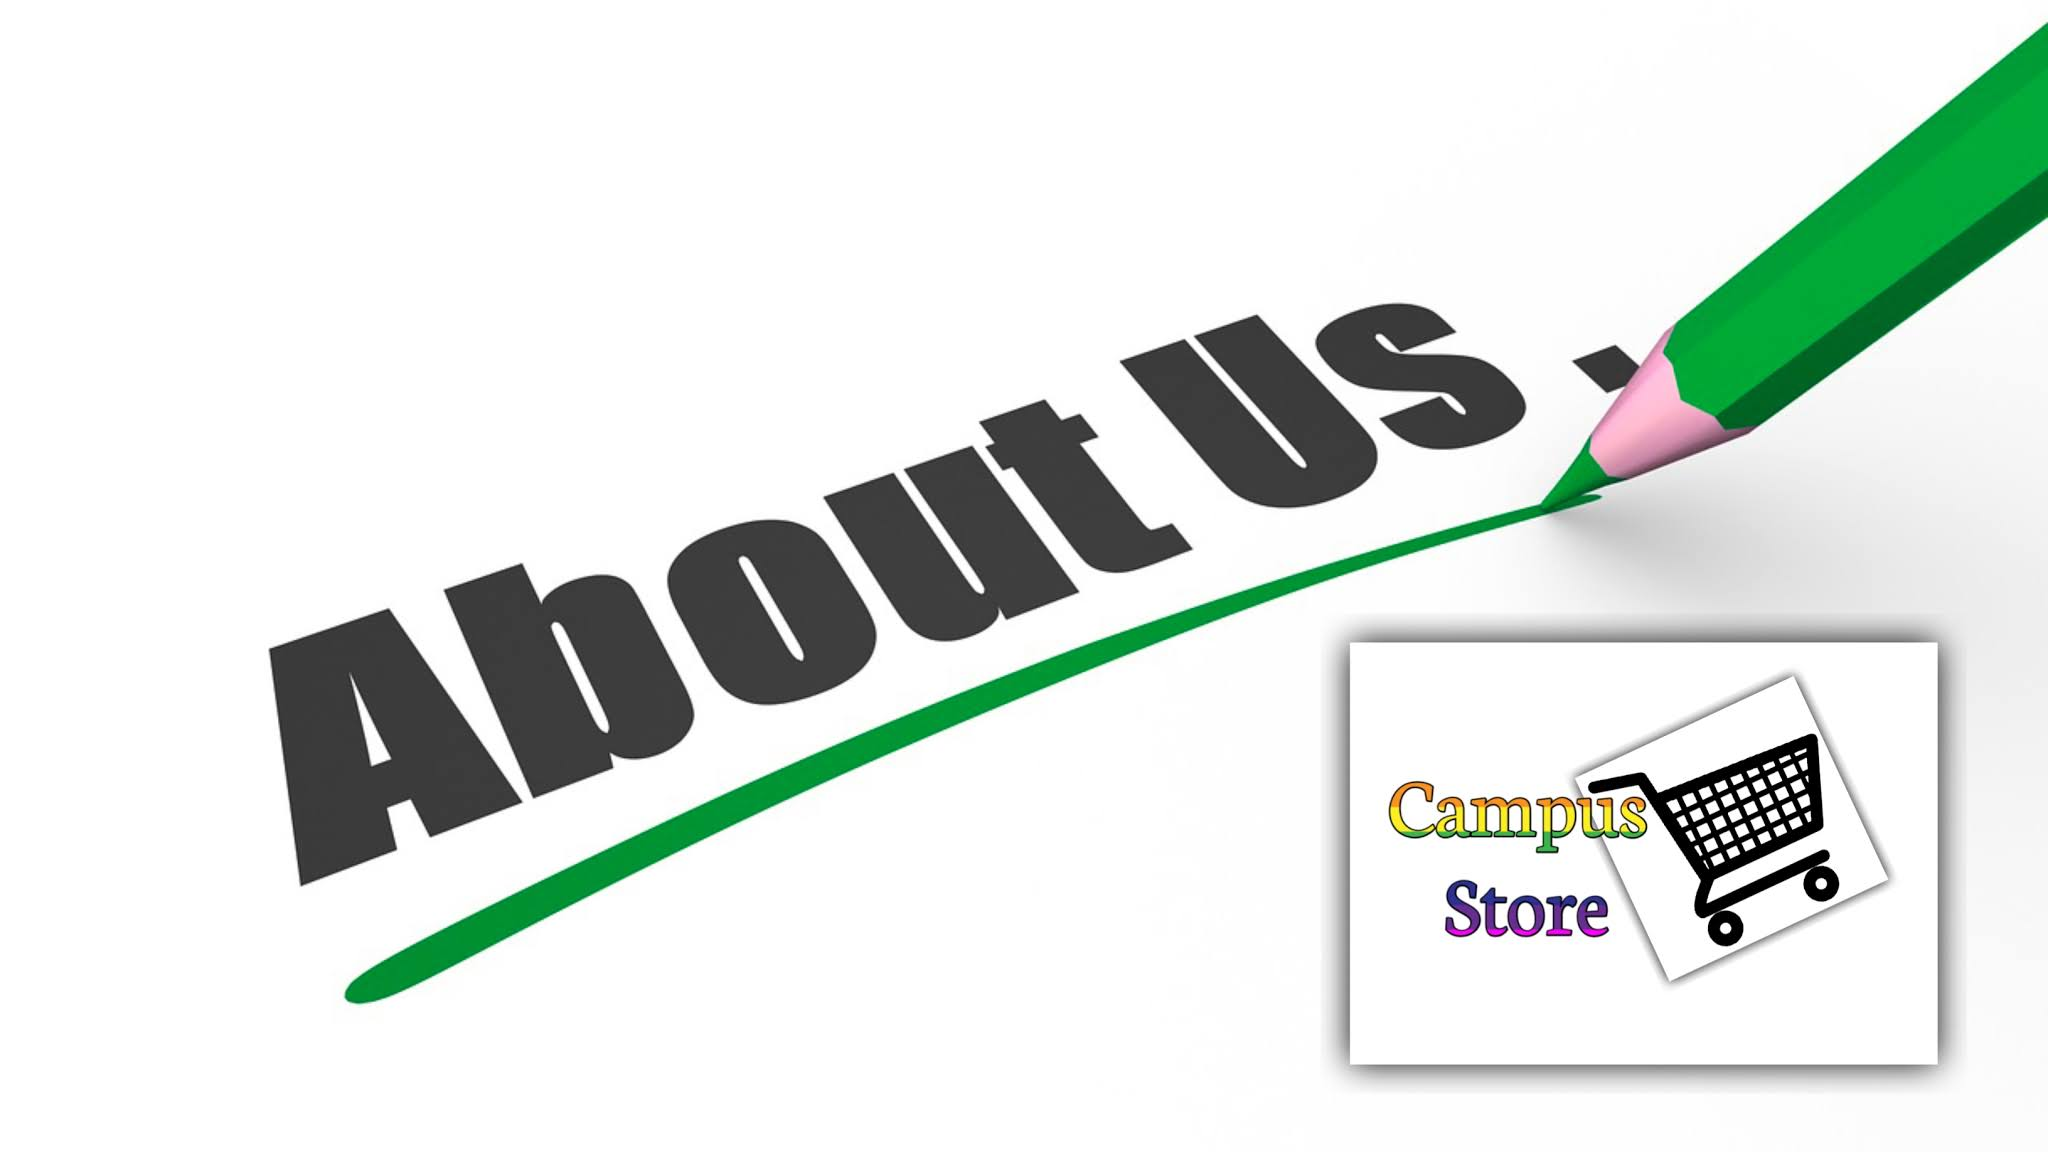 about Campus Store